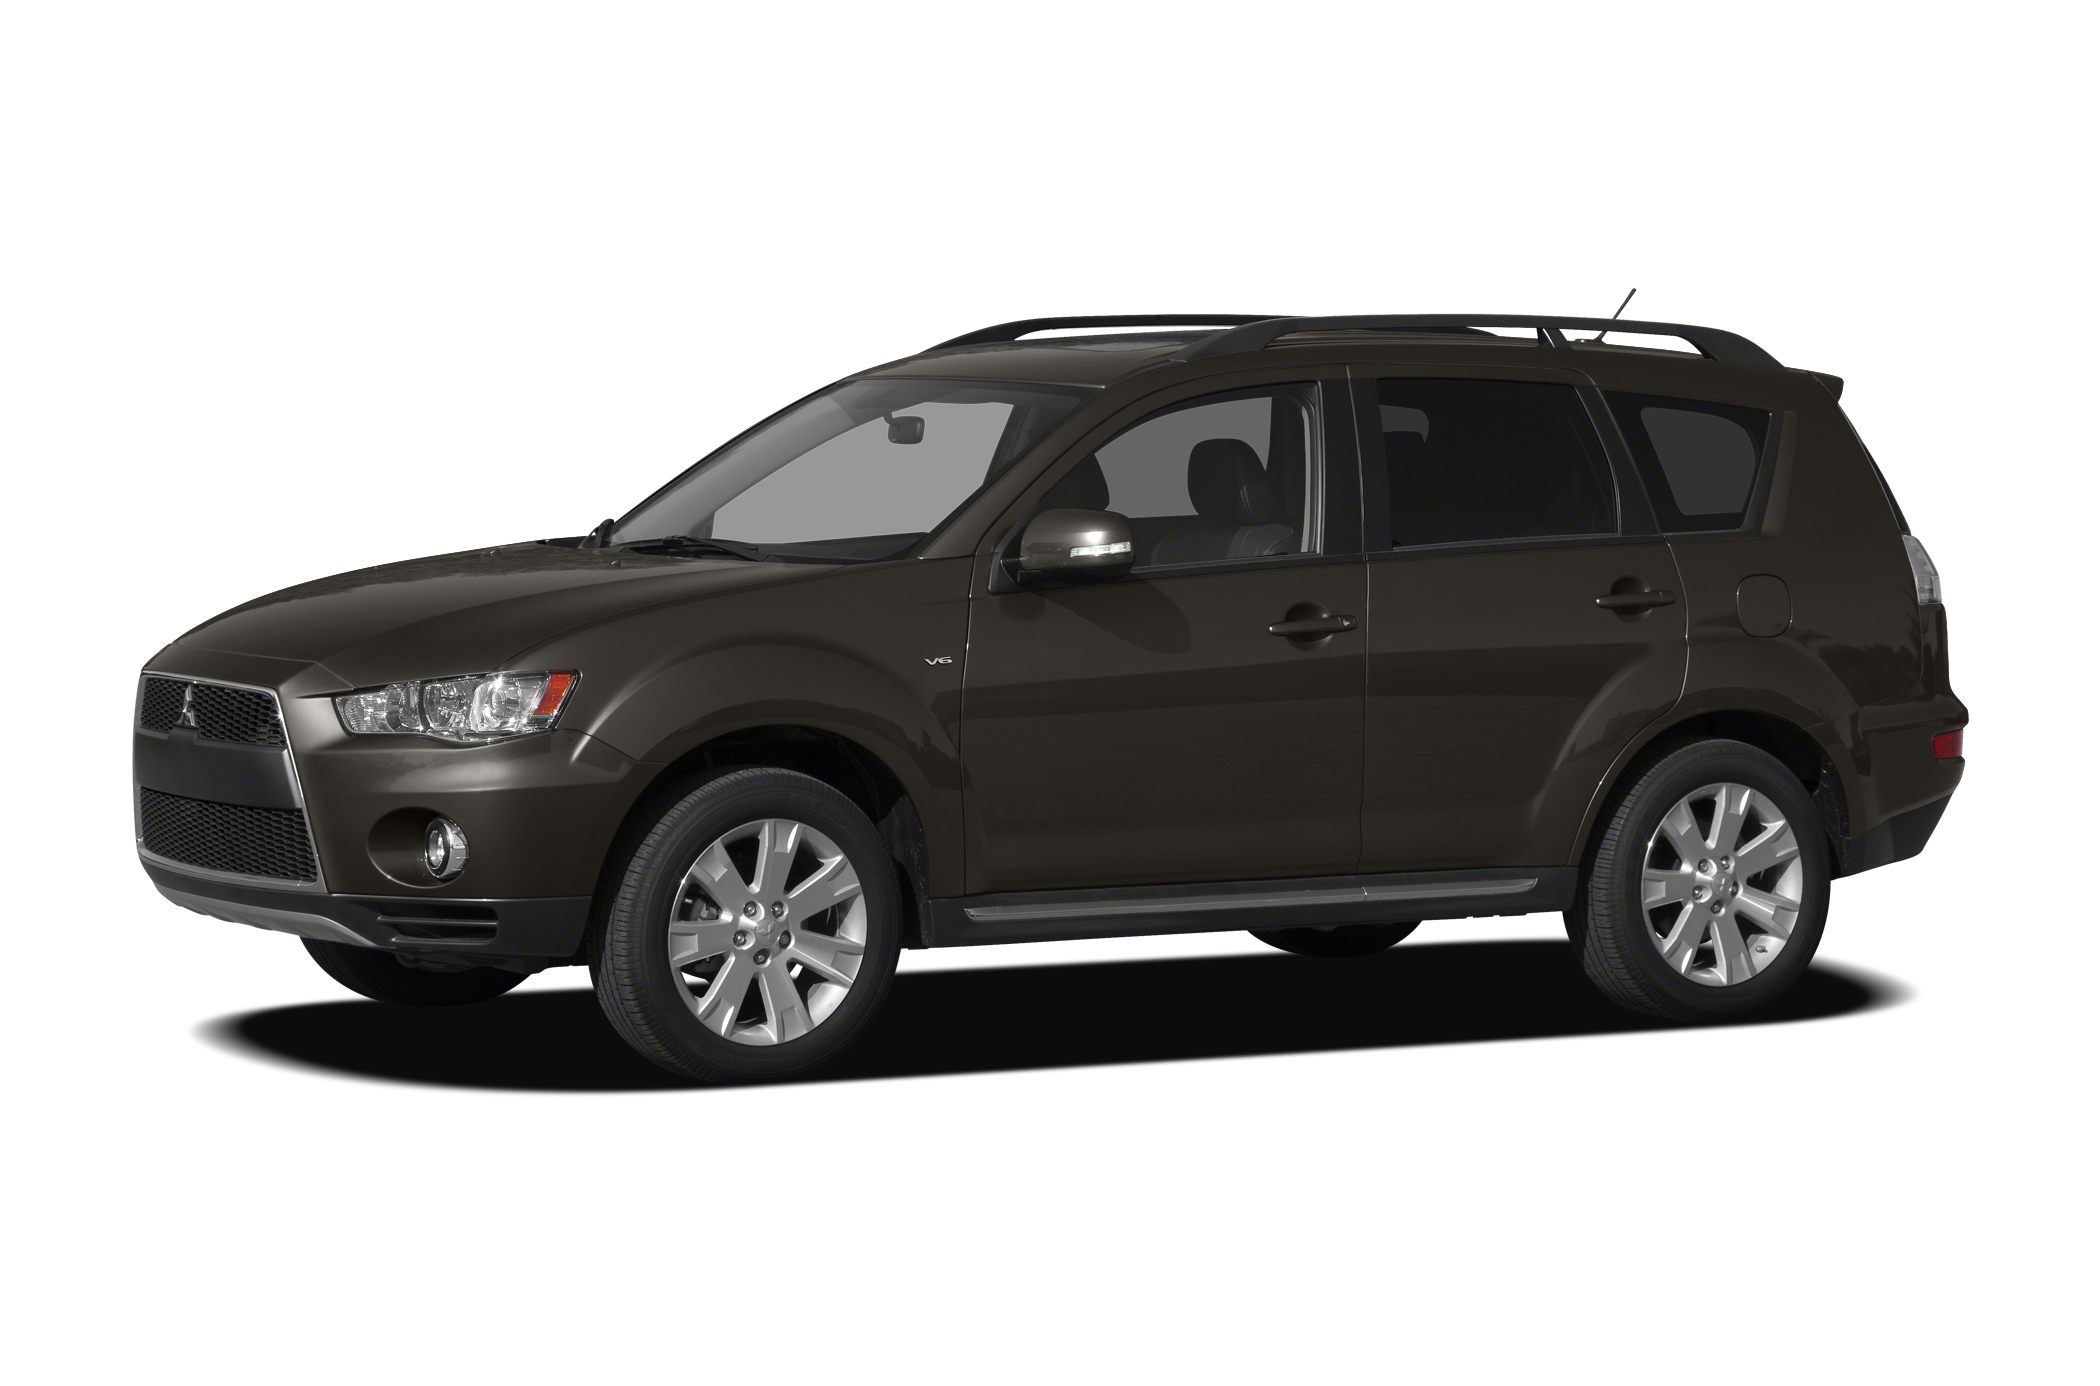 2010 Mitsubishi Outlander XLS SUV for sale in Fairless Hills for $17,900 with 50,705 miles.